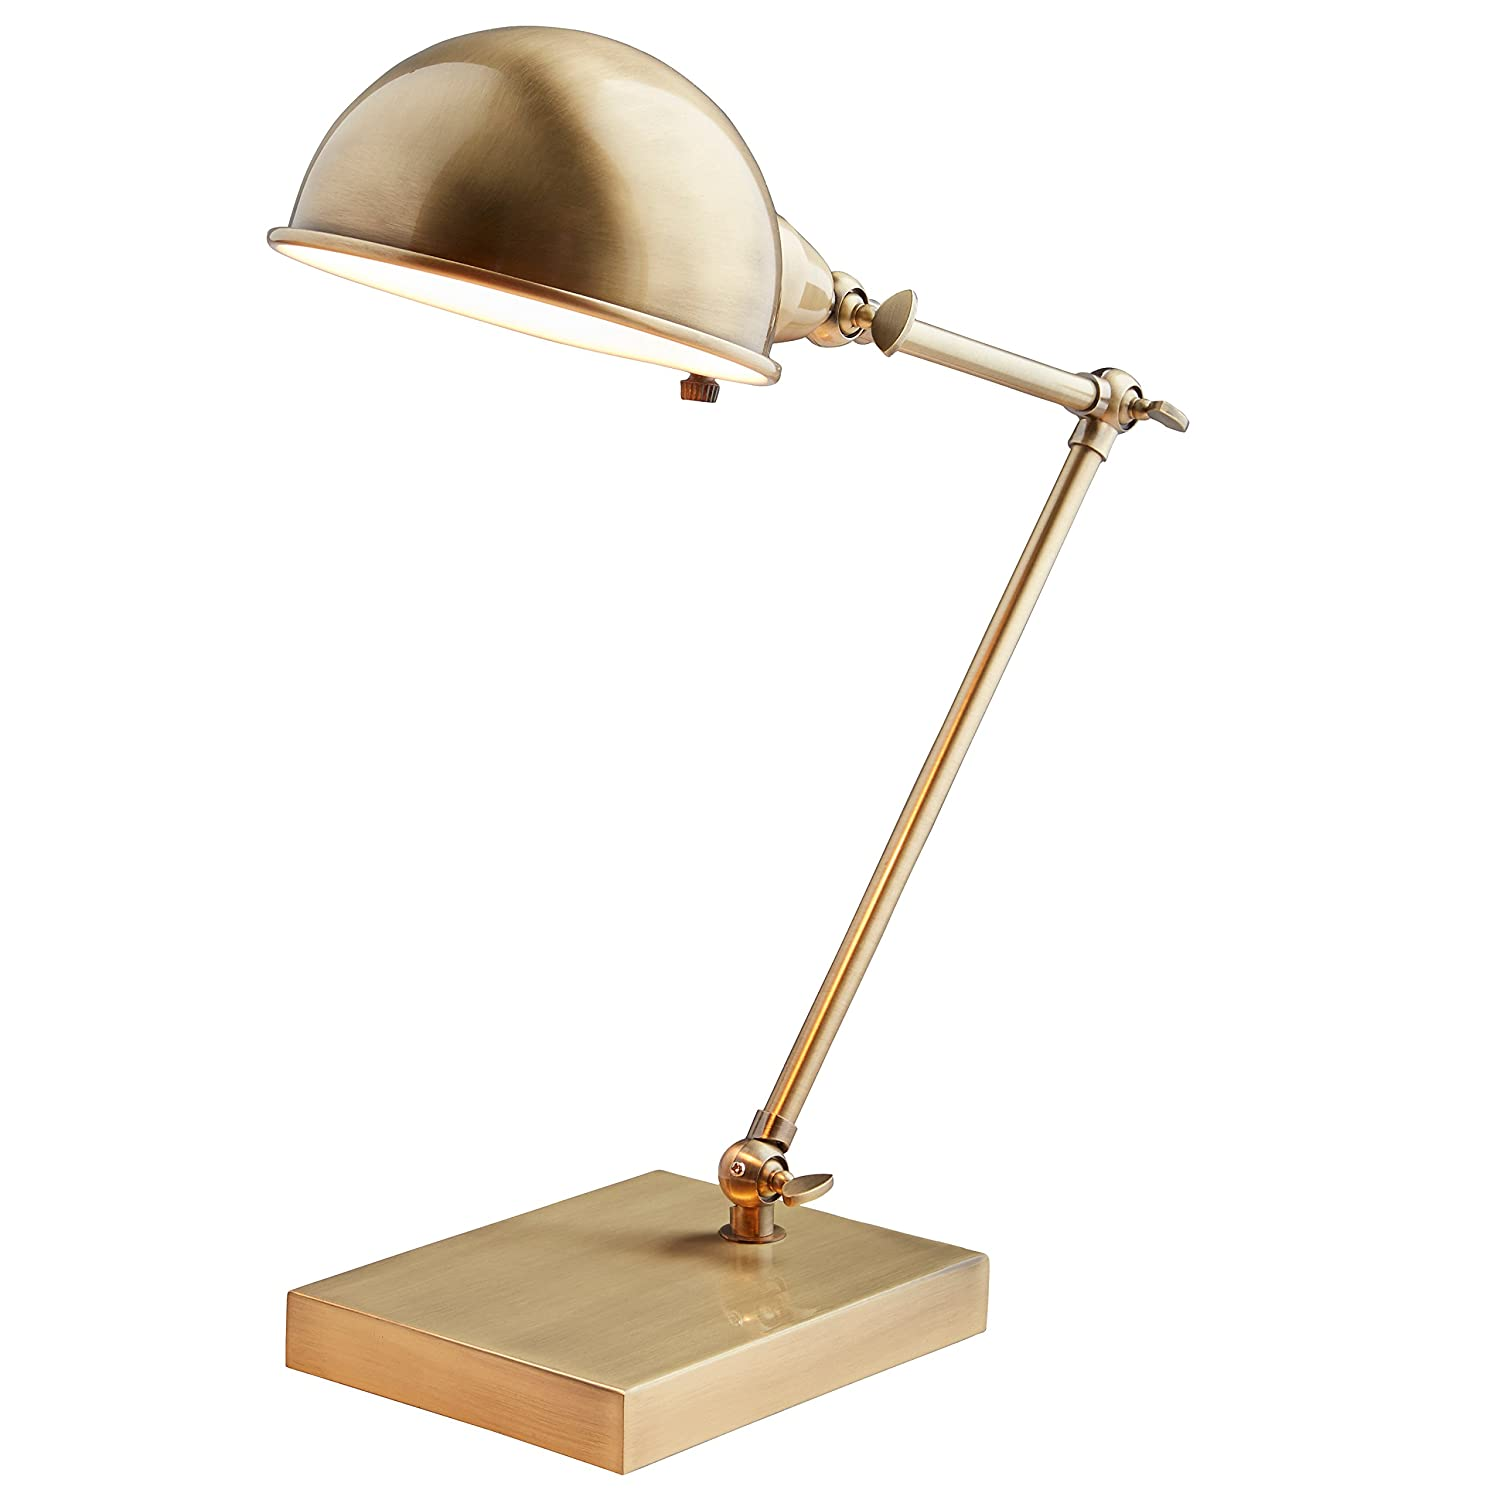 Stone & Beam Vintage Task Lamp With Bulb, 14H, Antiqued Brass 14H Adesso AF43446